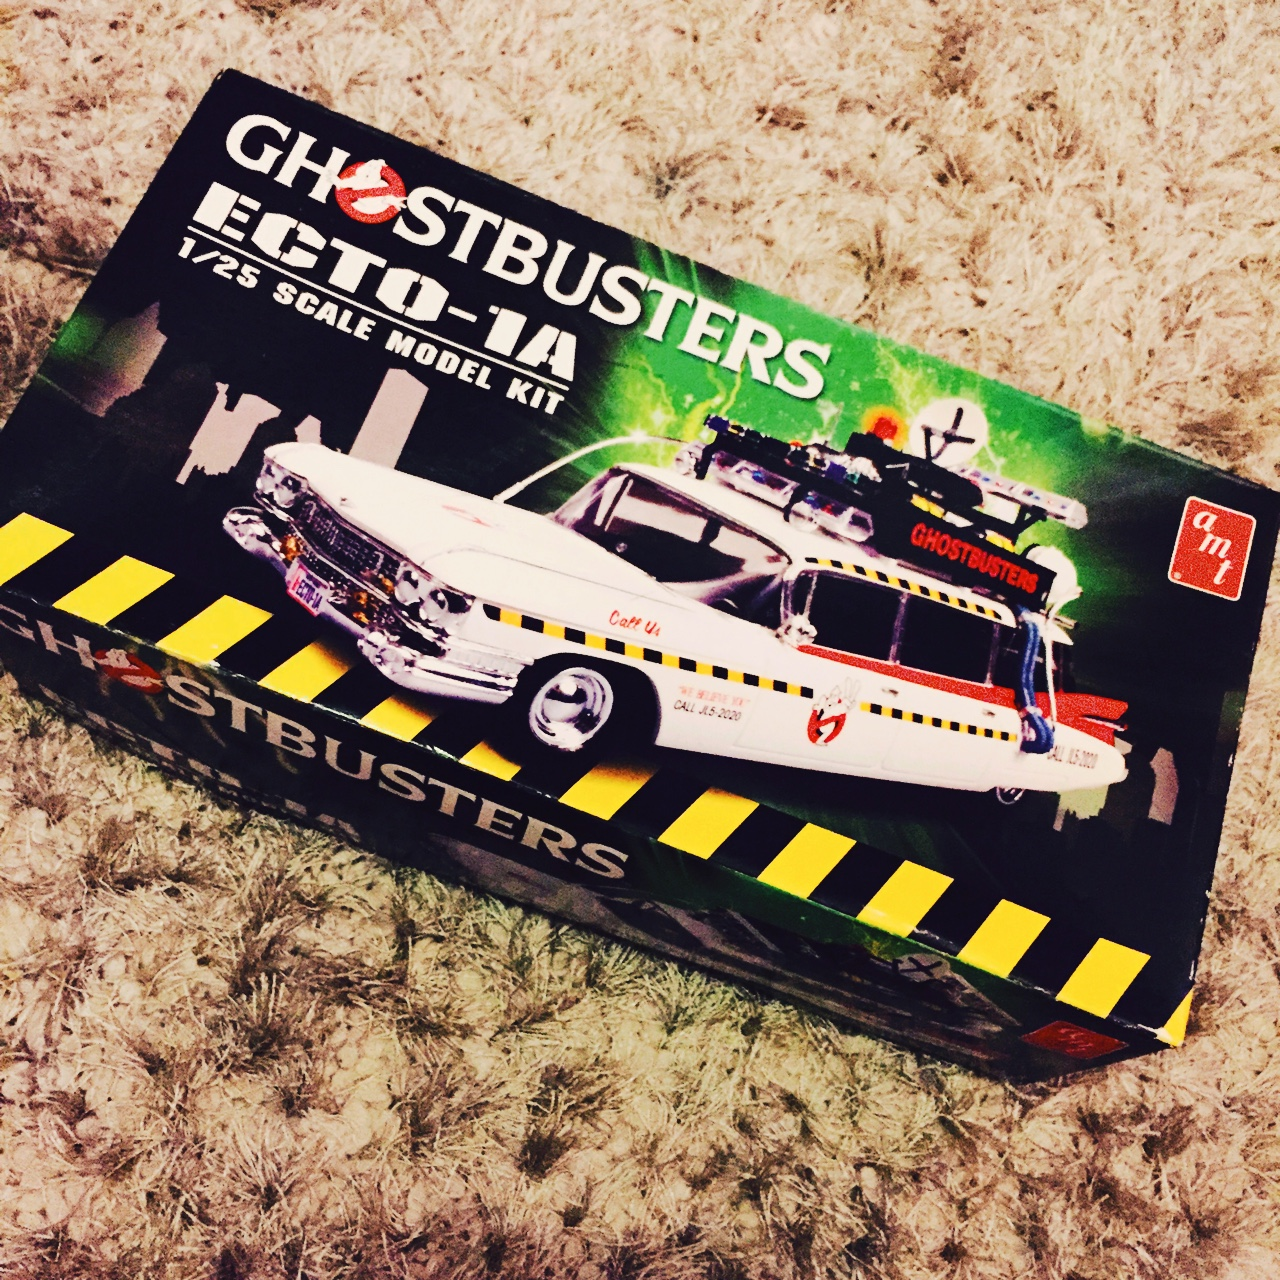 Ghostbusters Ecto 1 1/25 scale model - All parts    - Depop